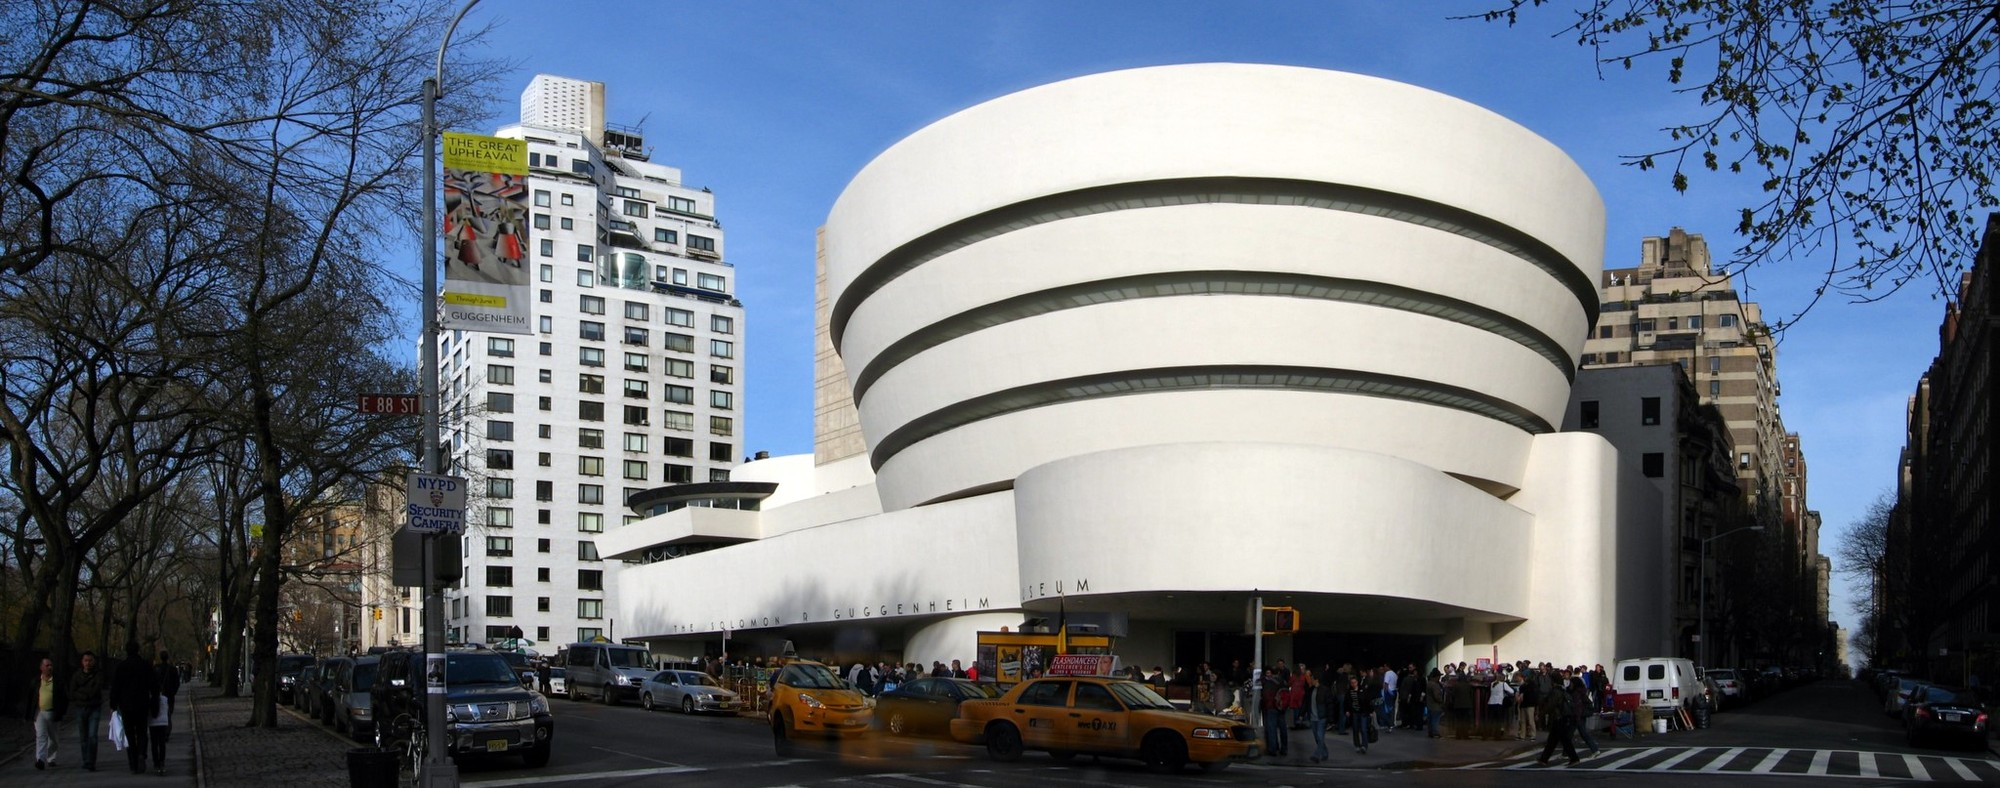 Gallery of architecture city guide: new york city 1.